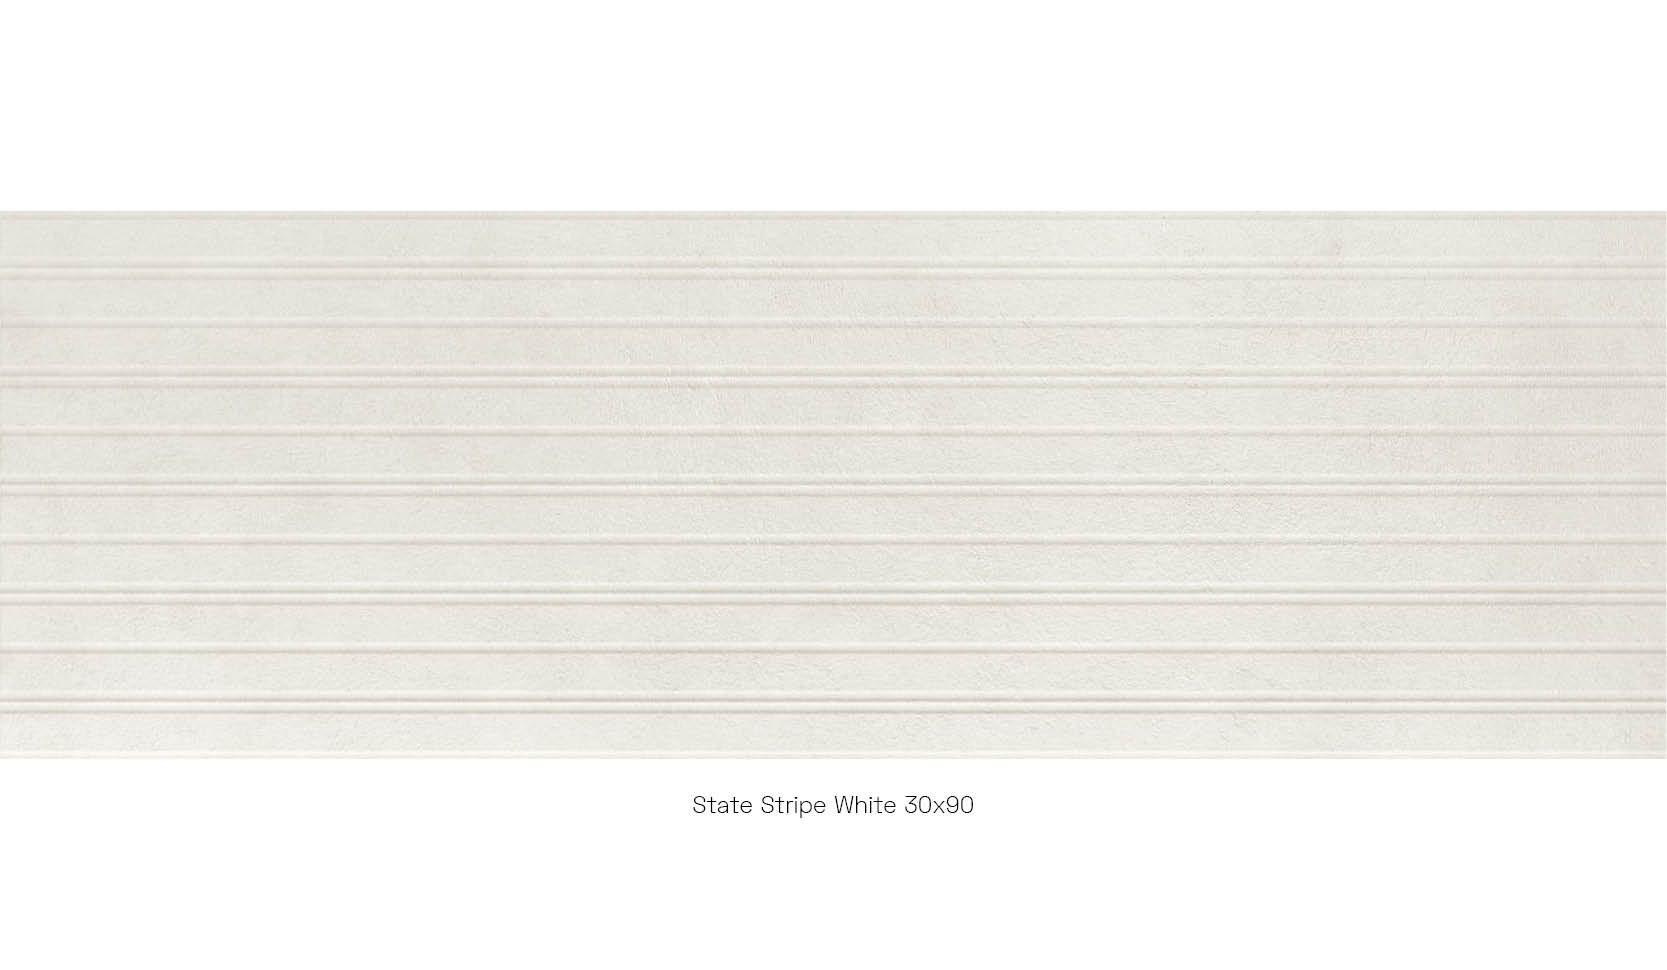 State Stripe White 30 x 90